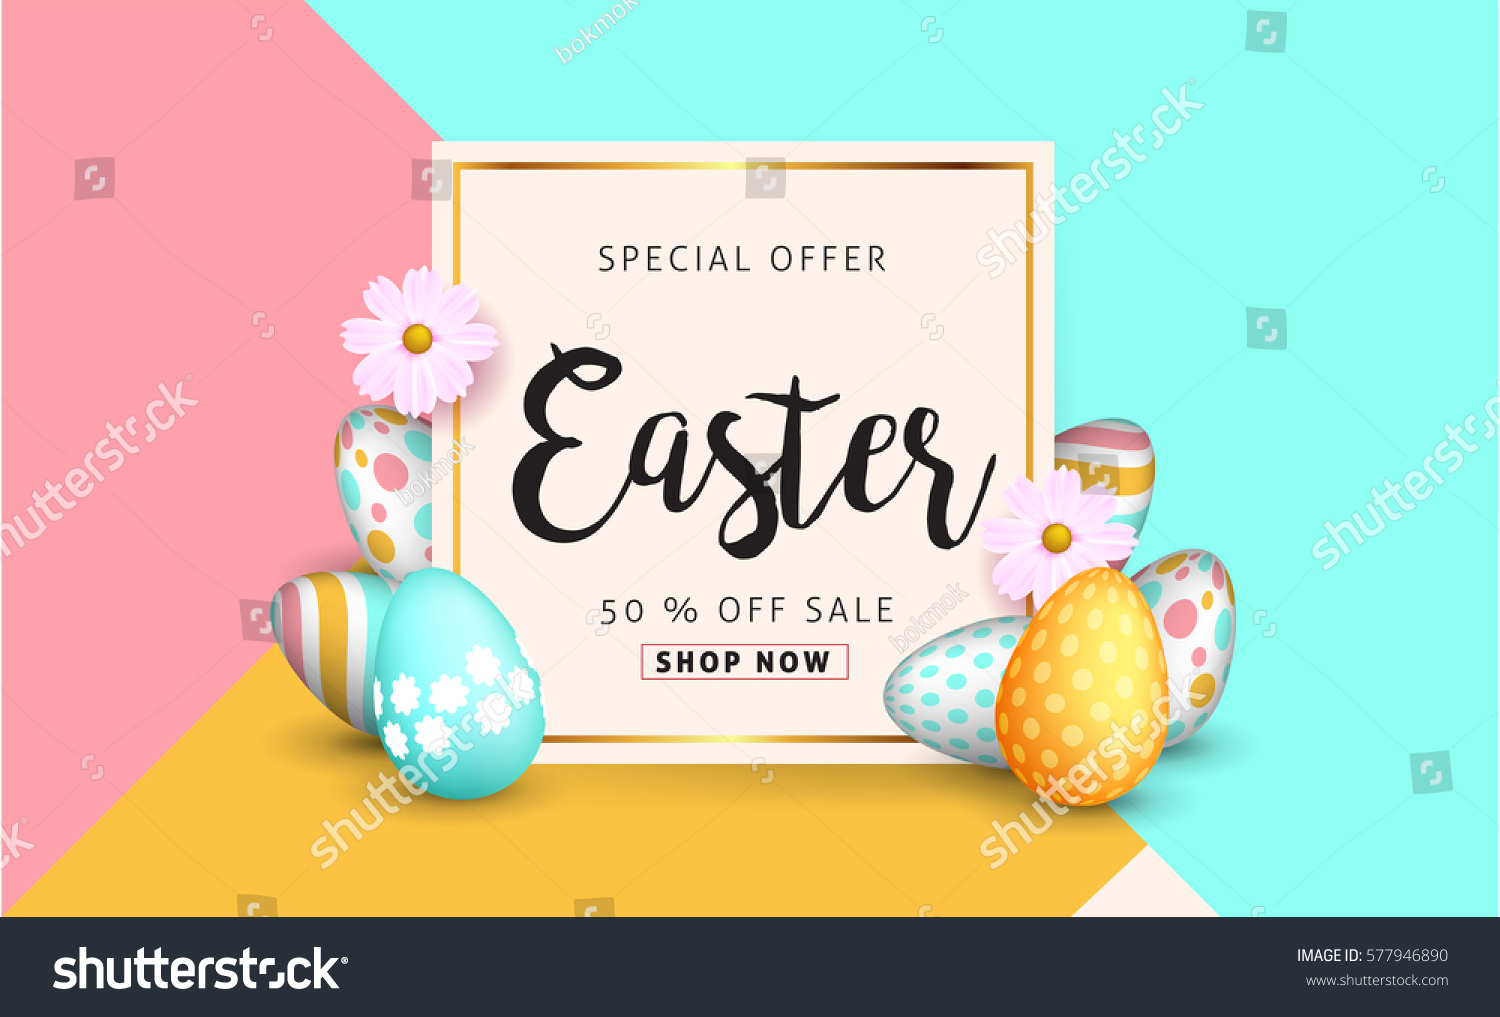 Easter sale banner background template with beautiful colorful spring flowers and eggs. Vector illustration. #577946890